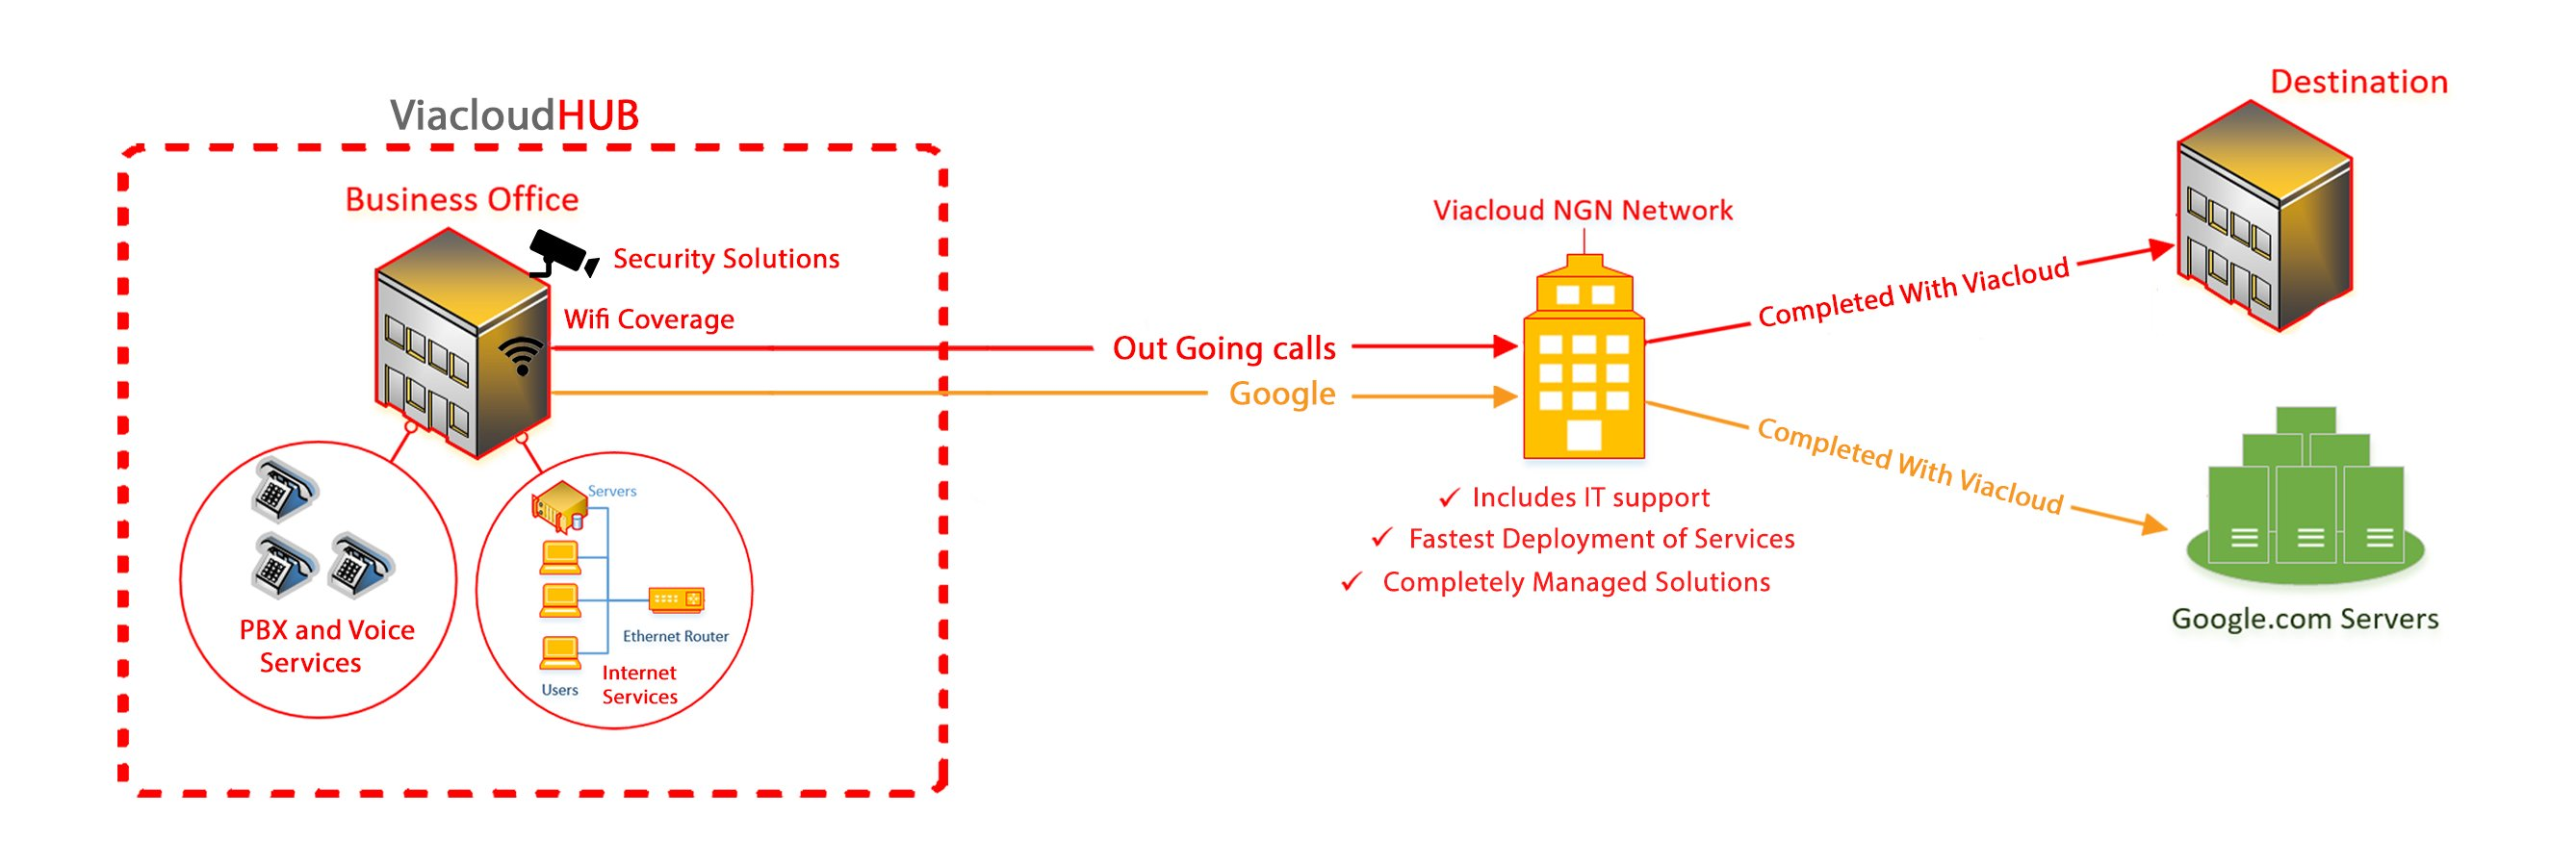 ViacloudHUB diagram